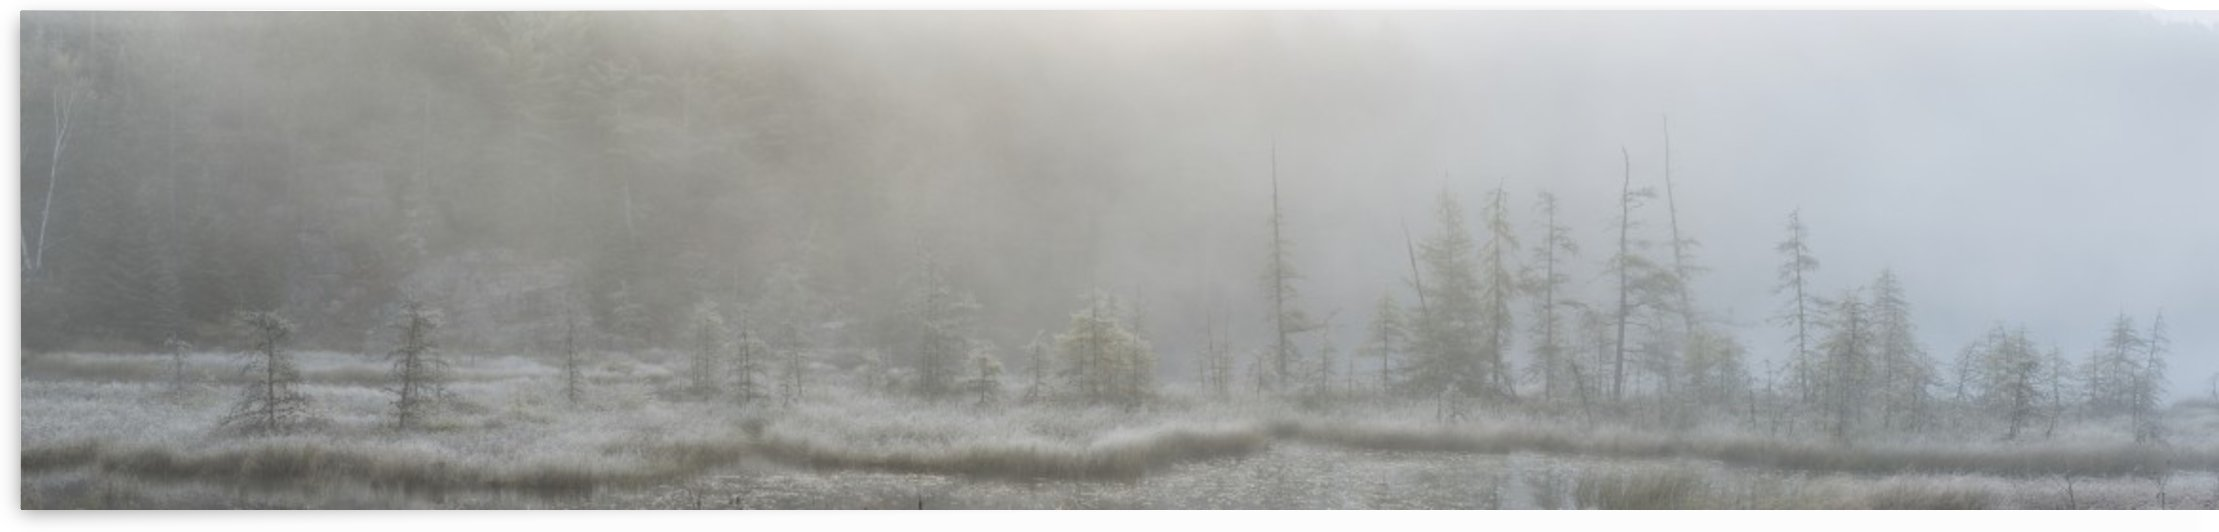 Panoramic view of early morning mist over a small pond along the Rock Lake Road, Algonquin Park; Ontario, Canada by PacificStock